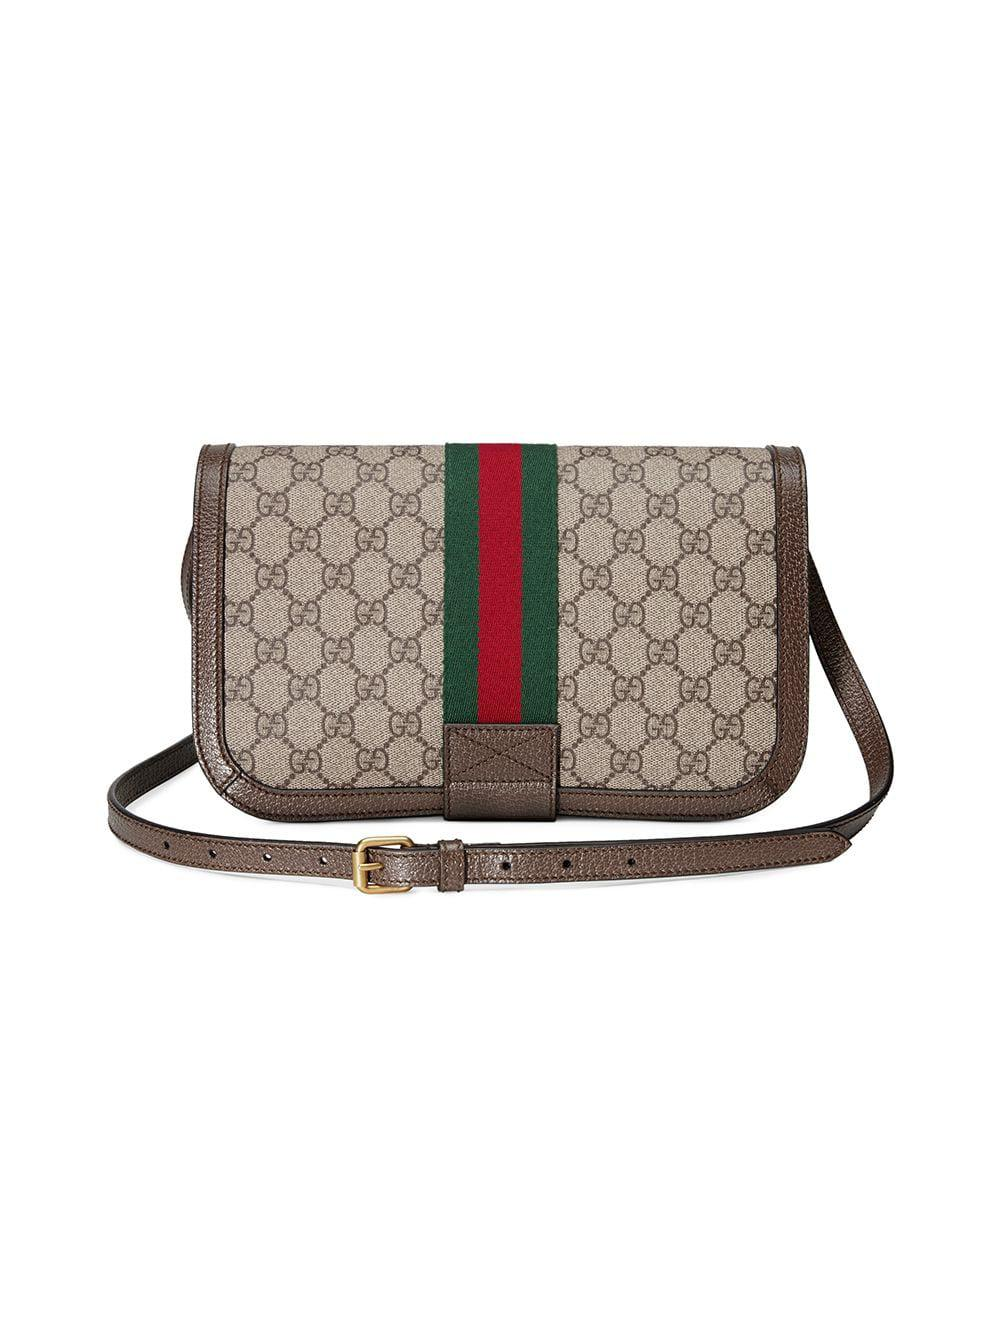 b20cd410ea2 Lyst - Gucci Ophidia GG Messenger Bag in Brown - Save 17%